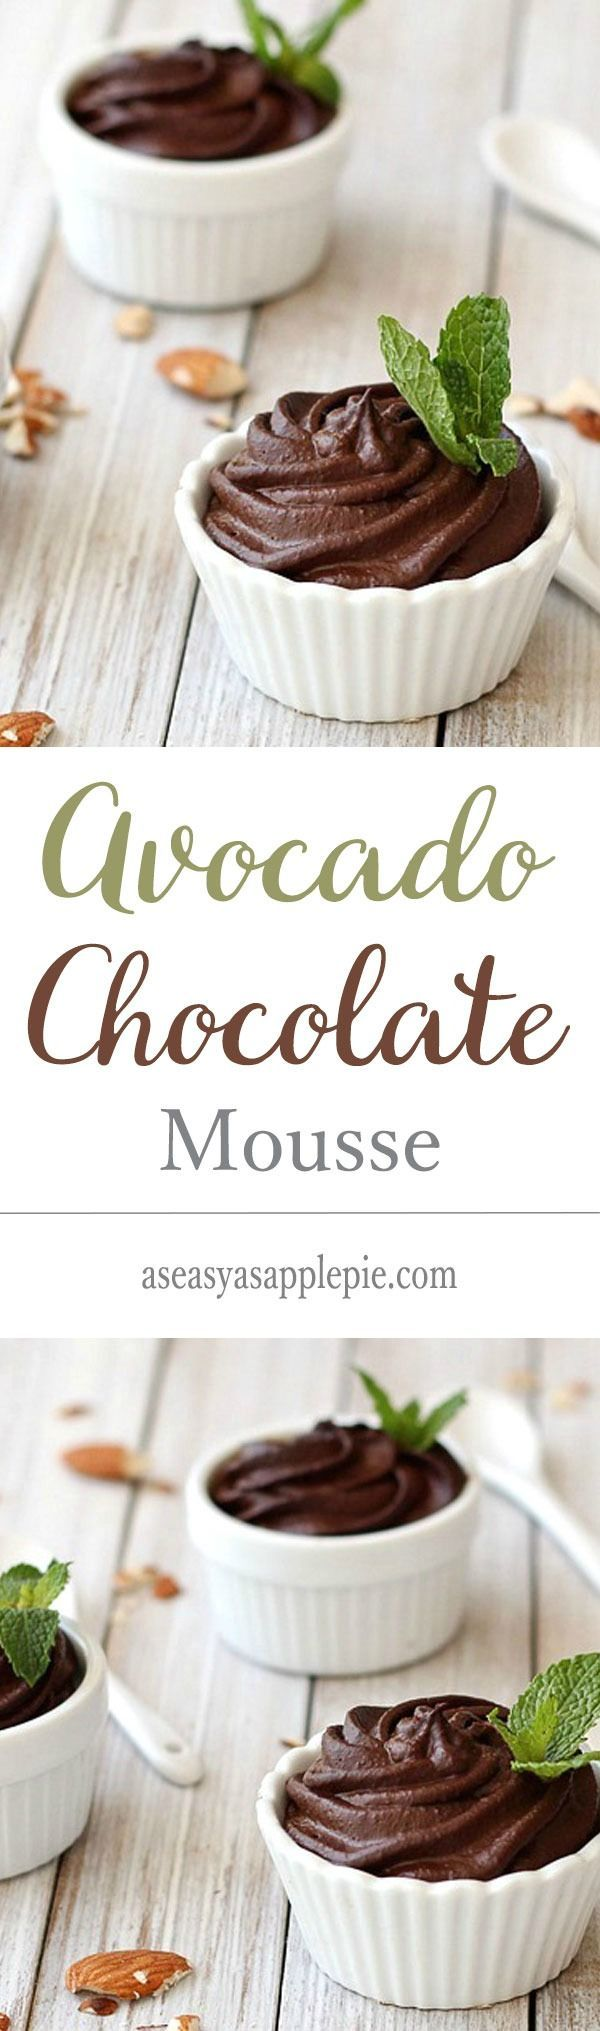 This rich Avocado Chocolate Mousse is healthy, gluten-free, dairy-free and vegan